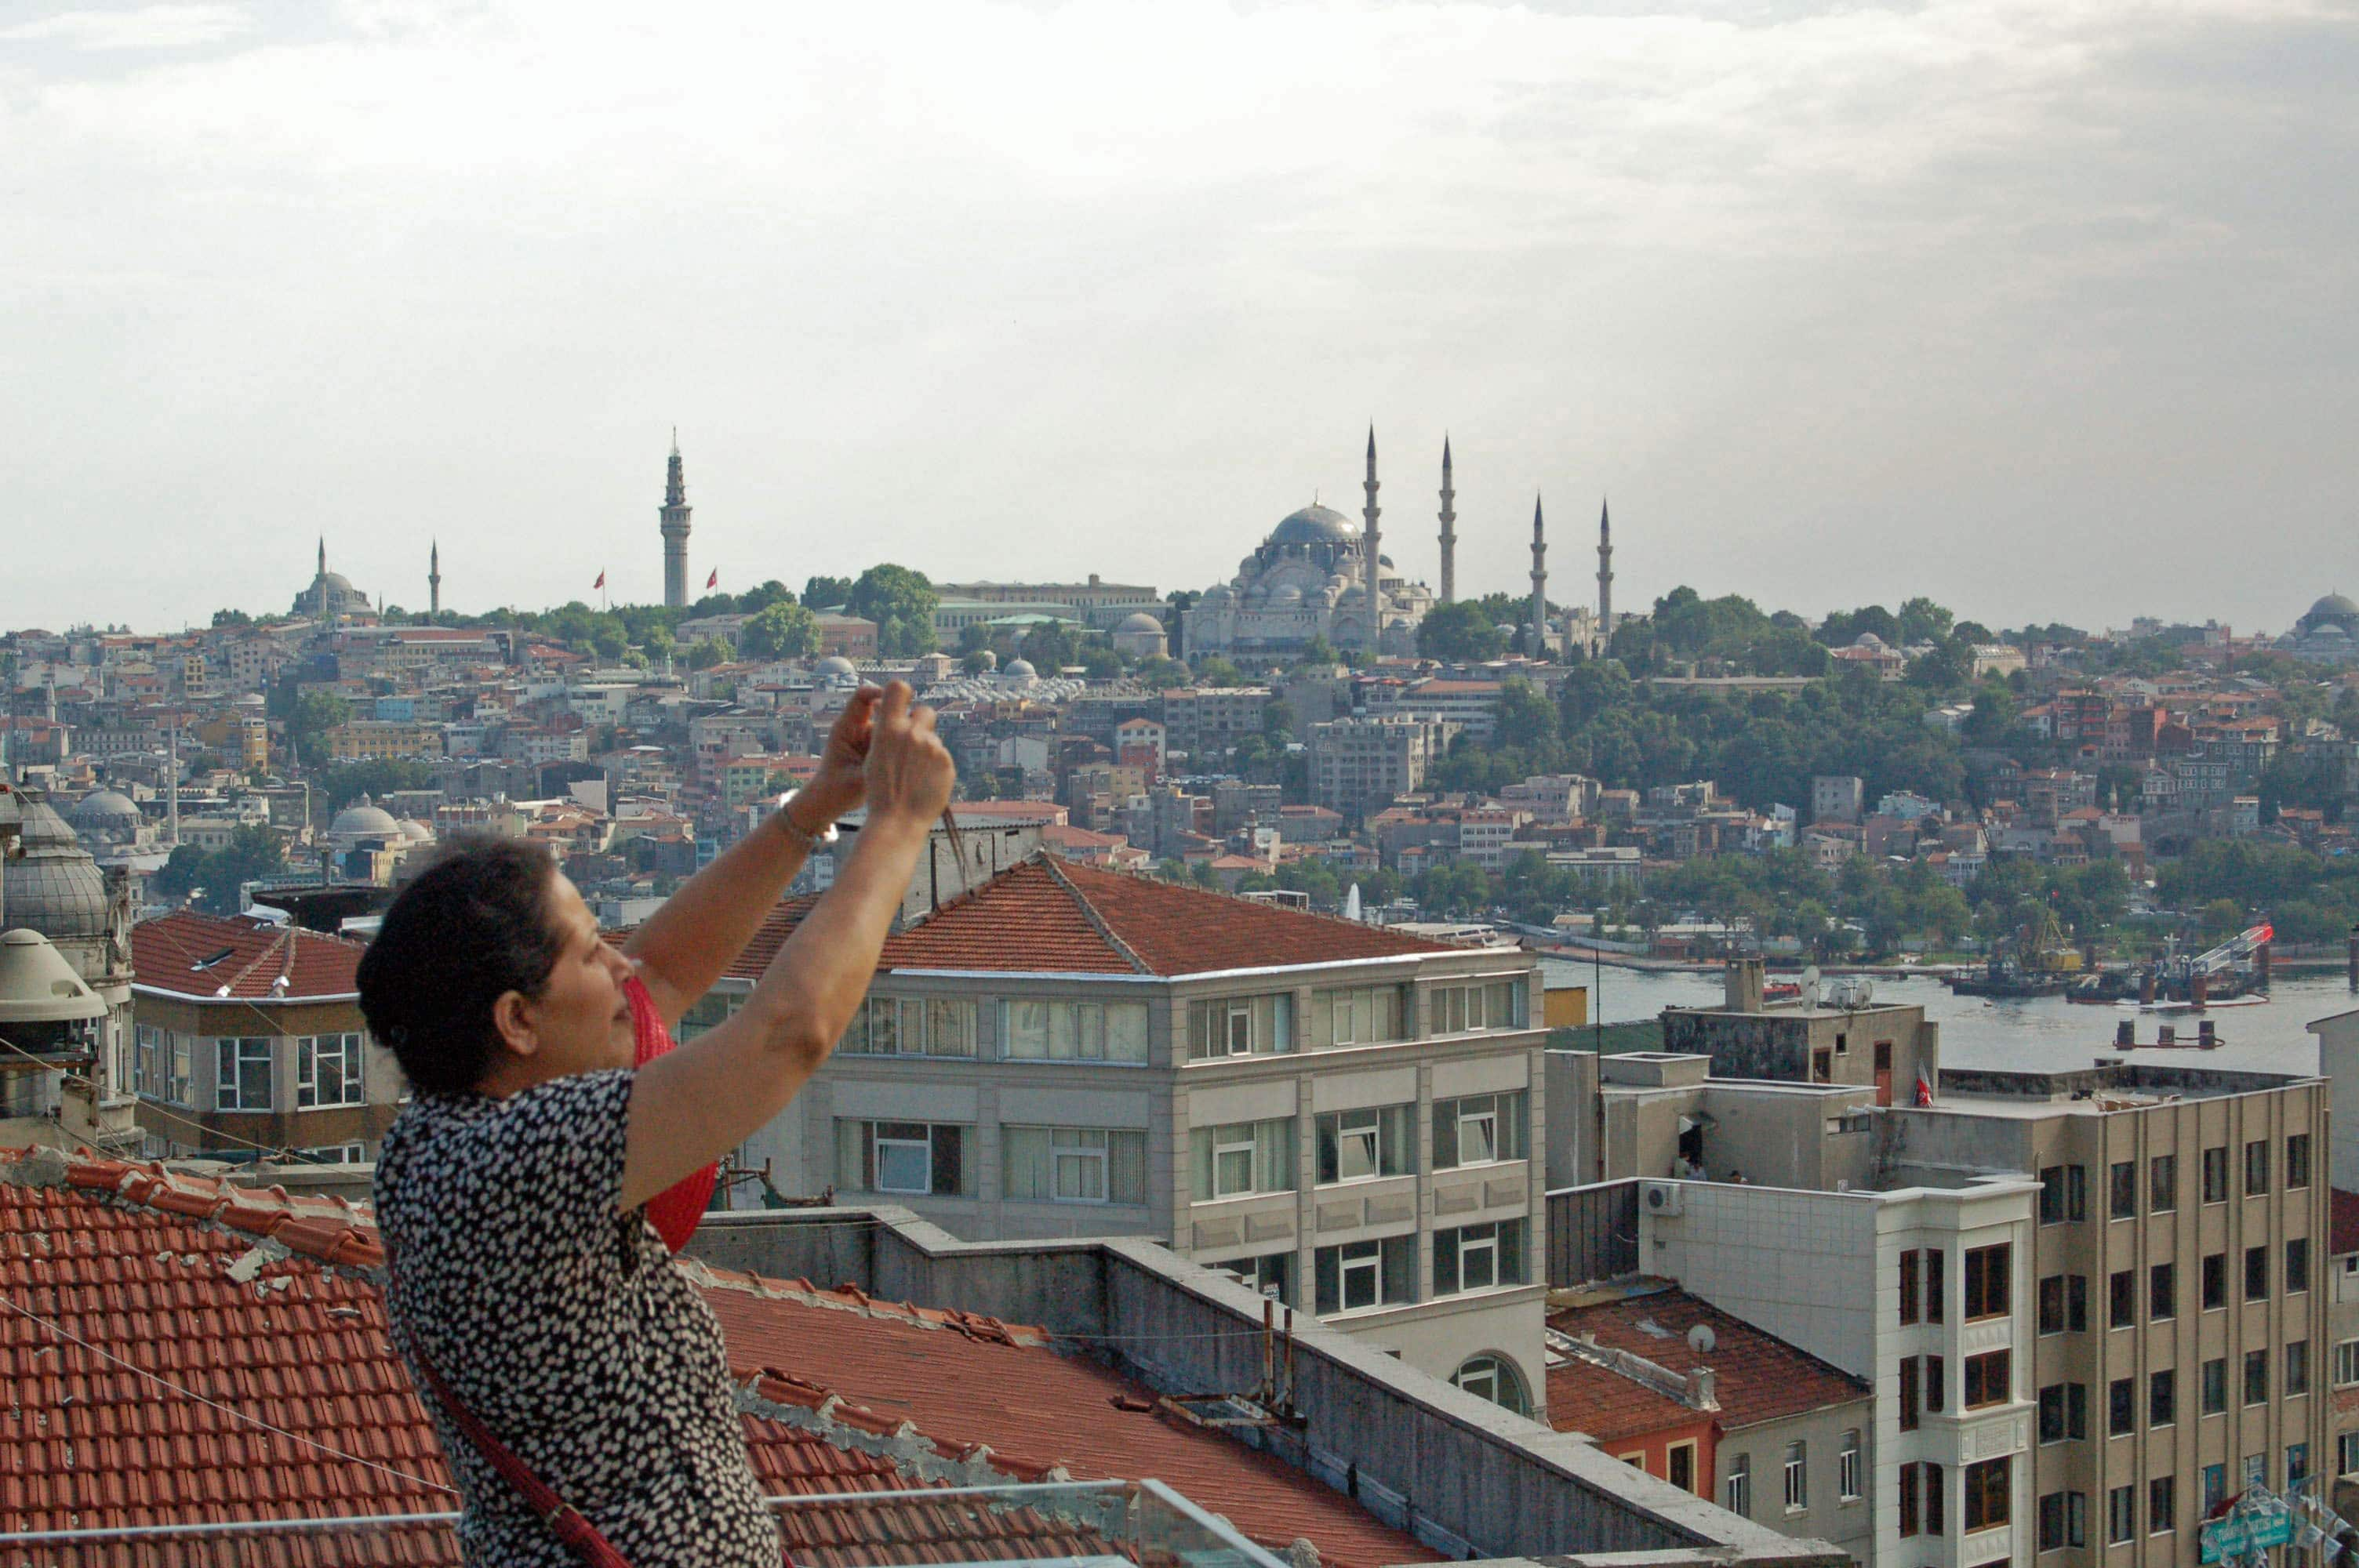 Geeta Mehta taking photos of Istanbul, Turkey while working with local groups demonstrating social capital of communities.